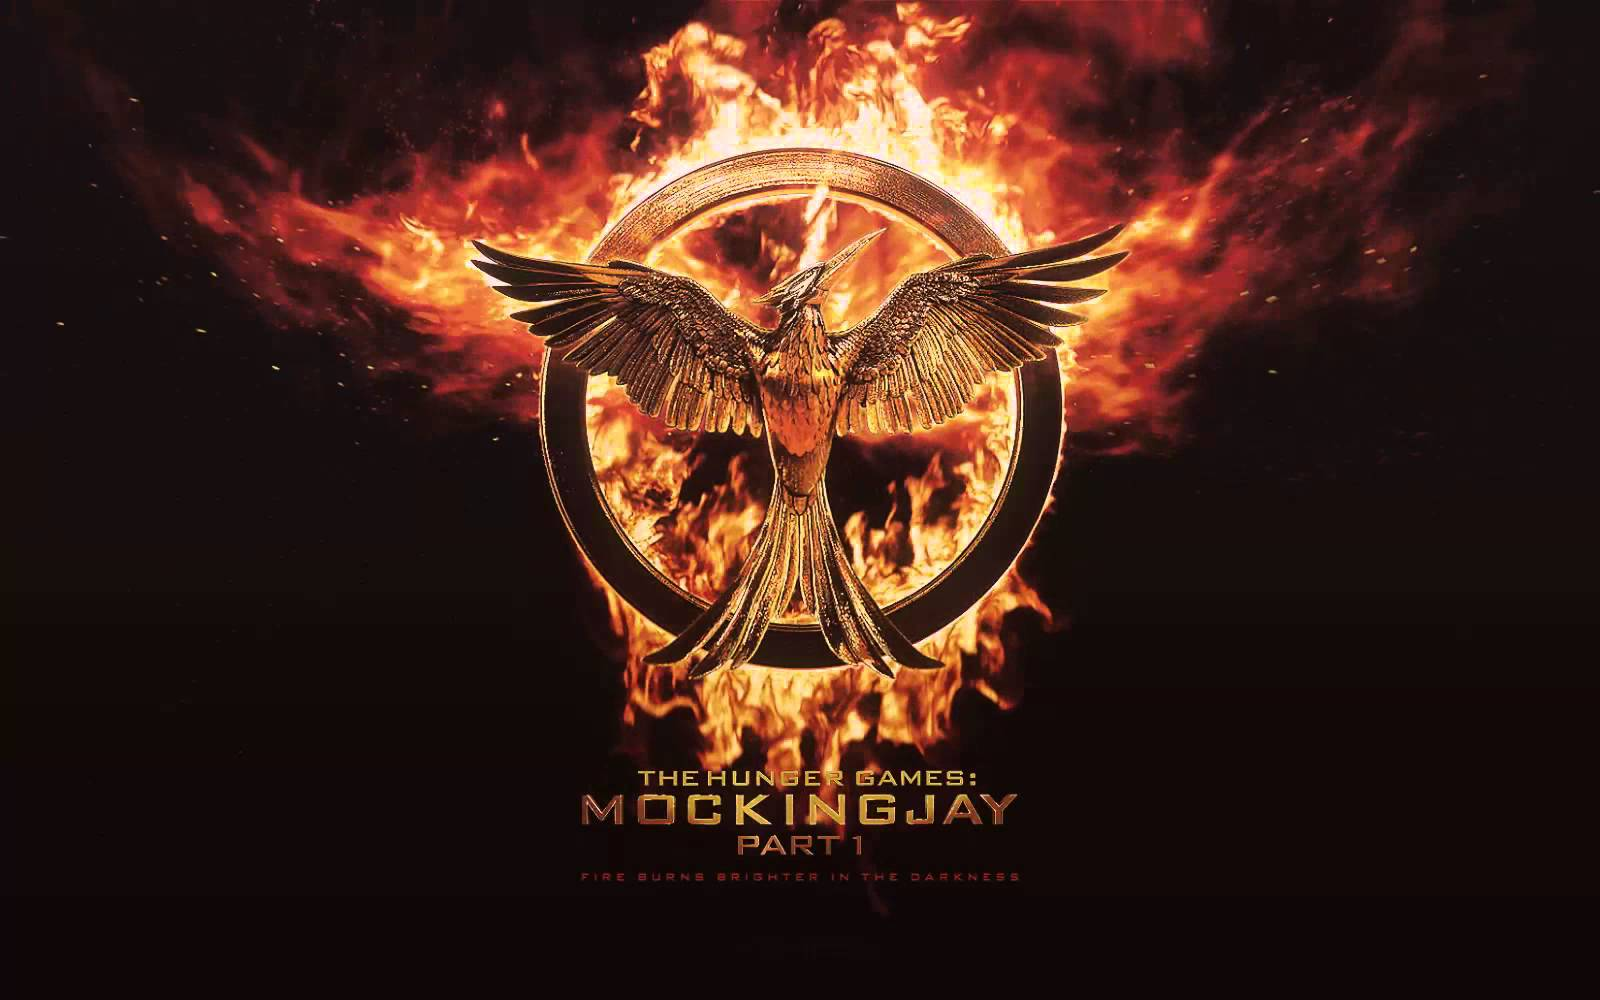 News Disney December 15 2017 also Michelle Williams additionally New Trailer The Hunger Games Mockingjay Part 1 also Johnny Depp Vanessa Paradis in addition Ethel Ernest 117128. on coco golden globe nominations